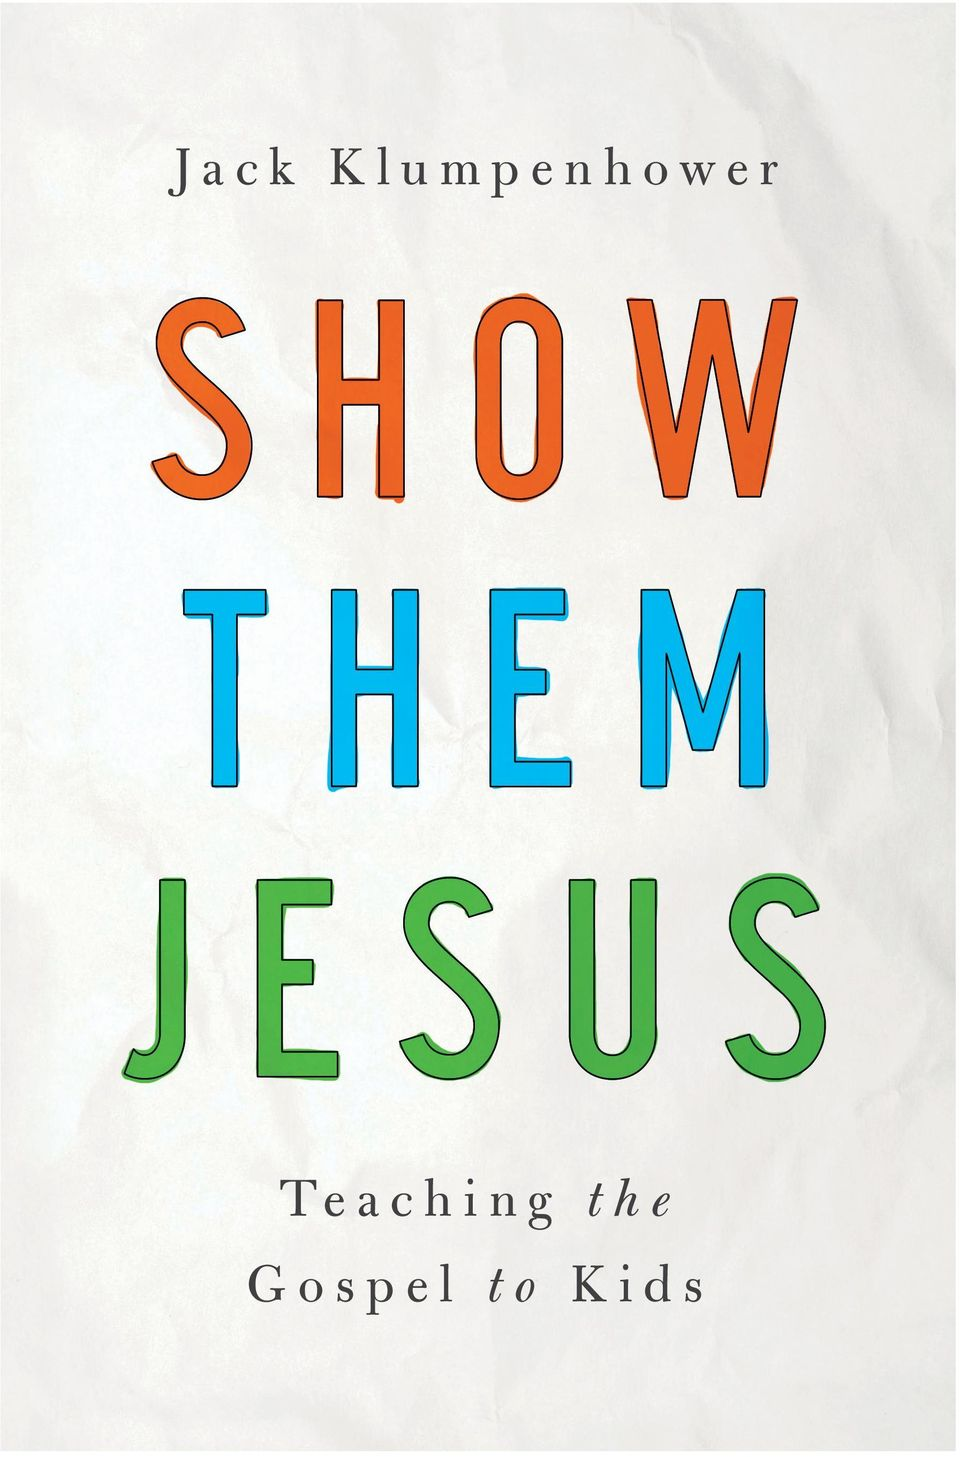 His how-to, gospel-centric approach will complement and enrich existing lessons or teaching materials and help teachers and parents to make the most of every teaching moment, whether in the classroom